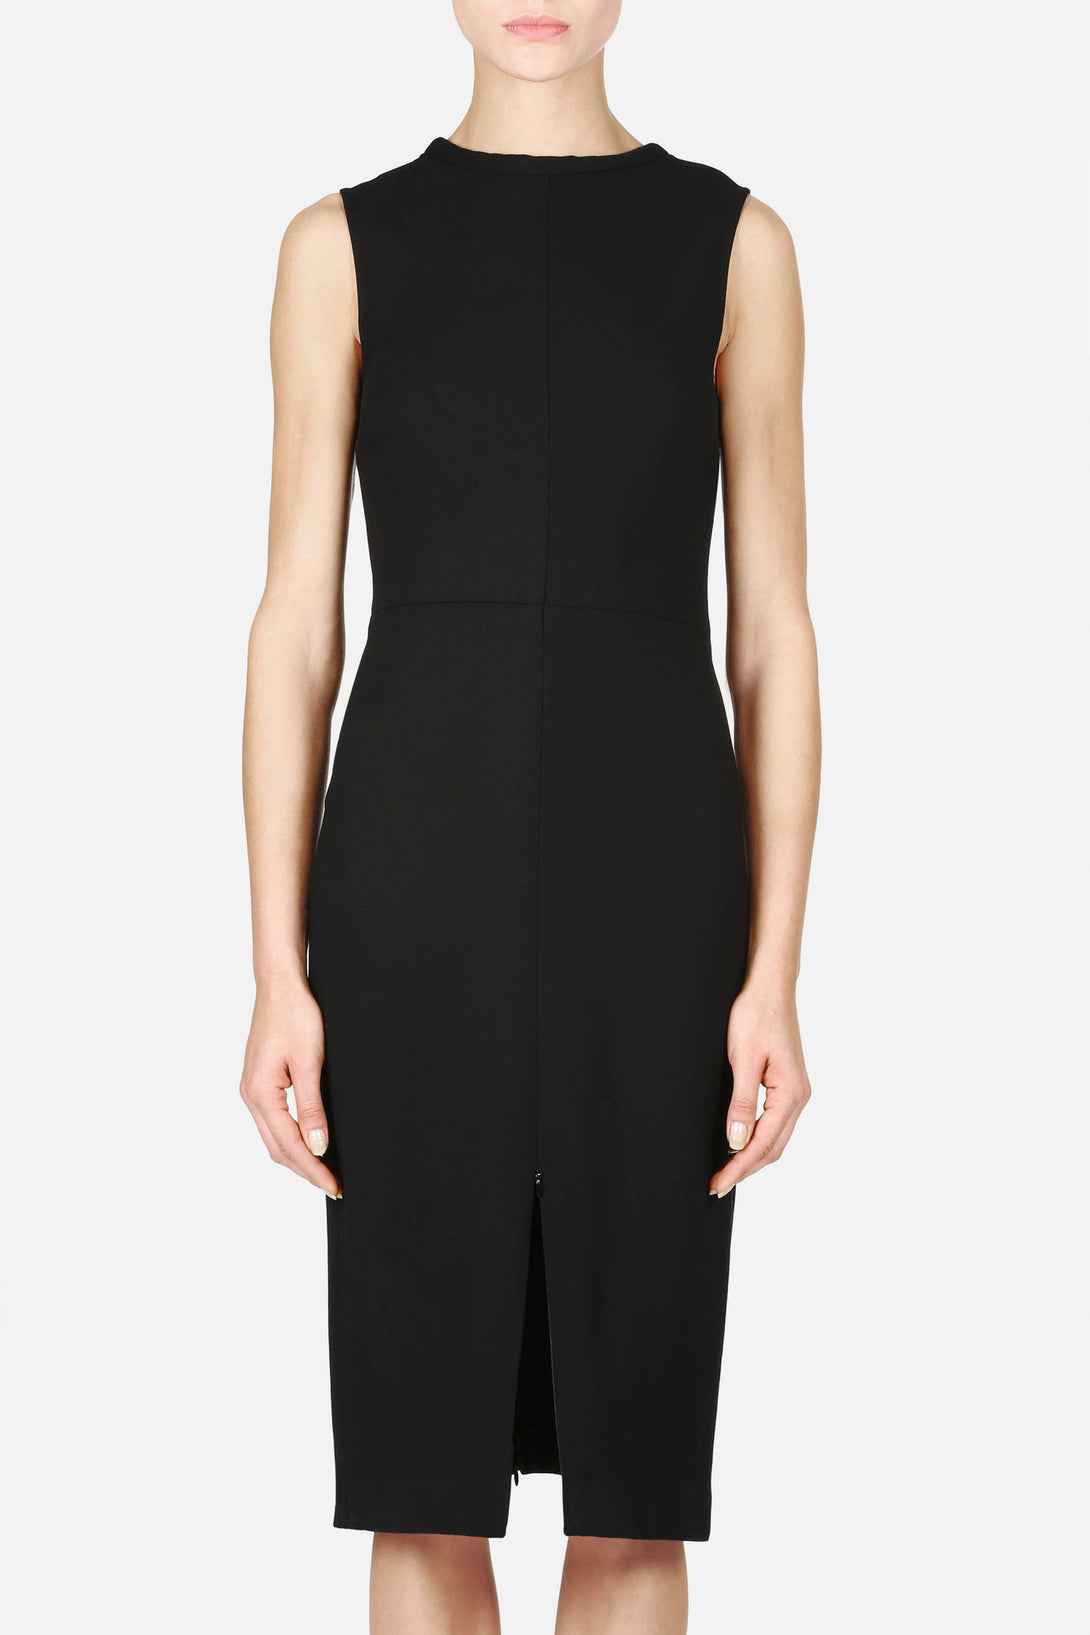 Dress 04 High Neck Shift Dress - Black